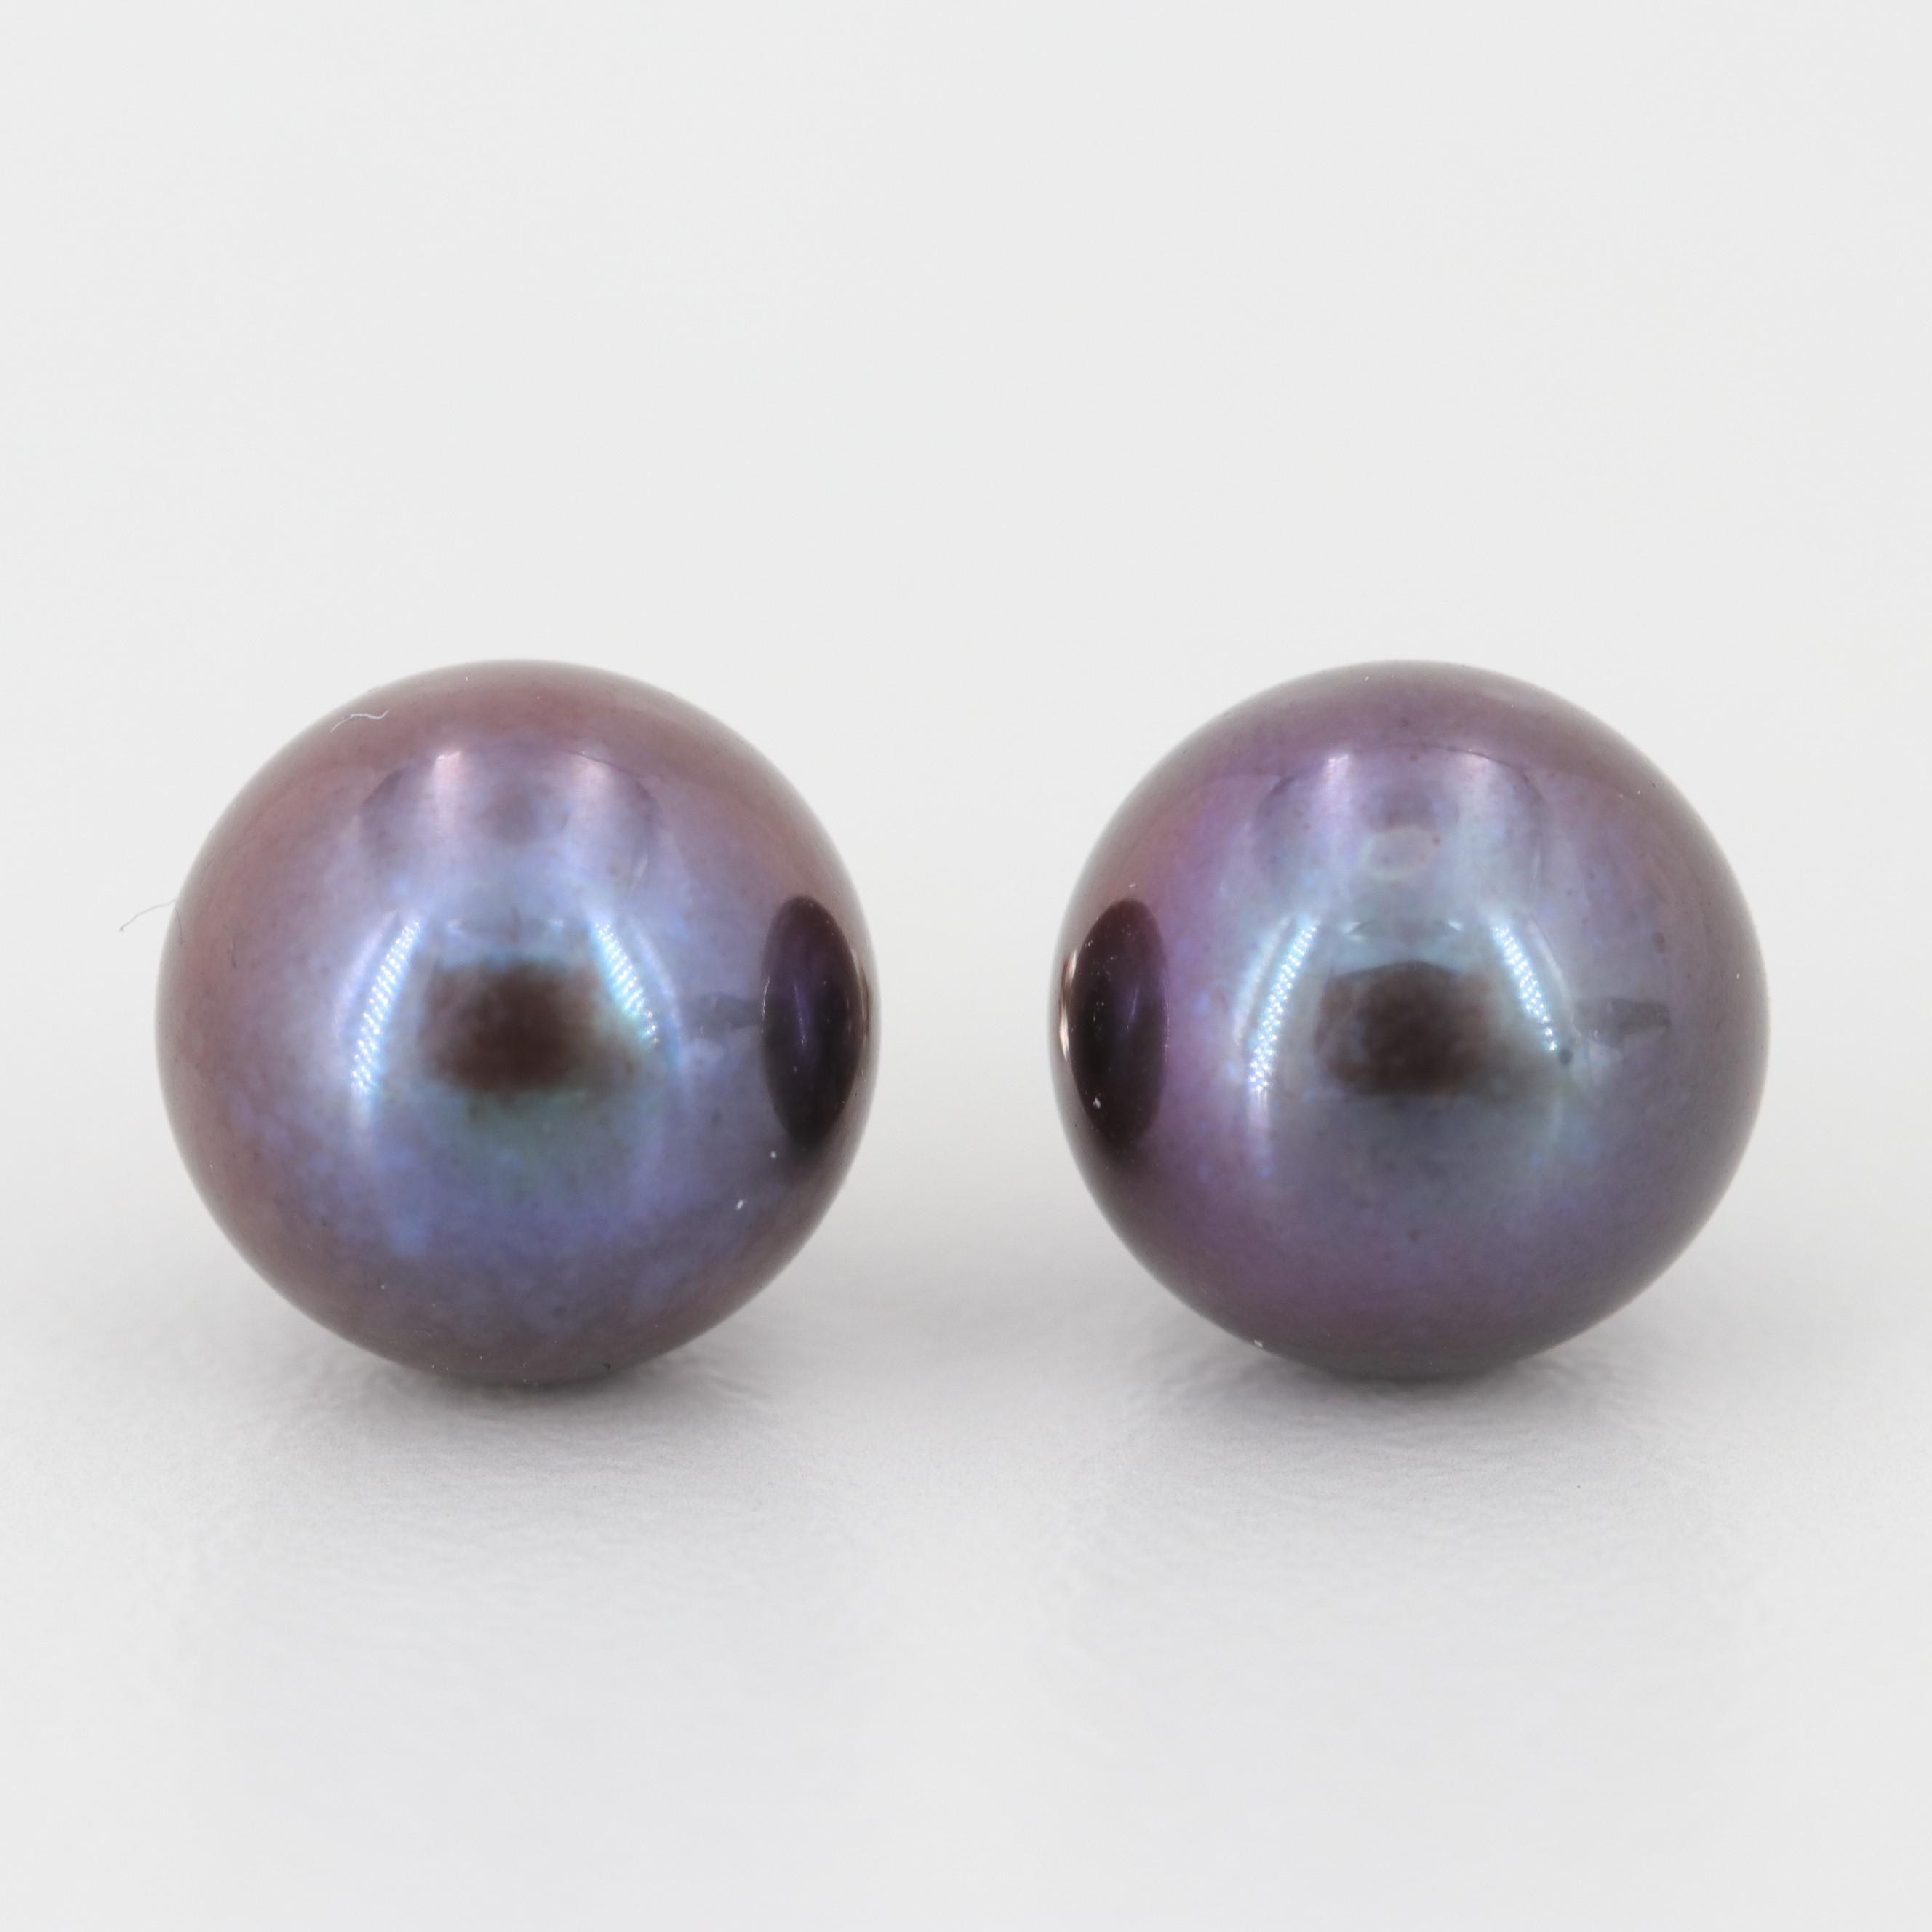 14K White Gold Cultured Pearl Stud Earrings